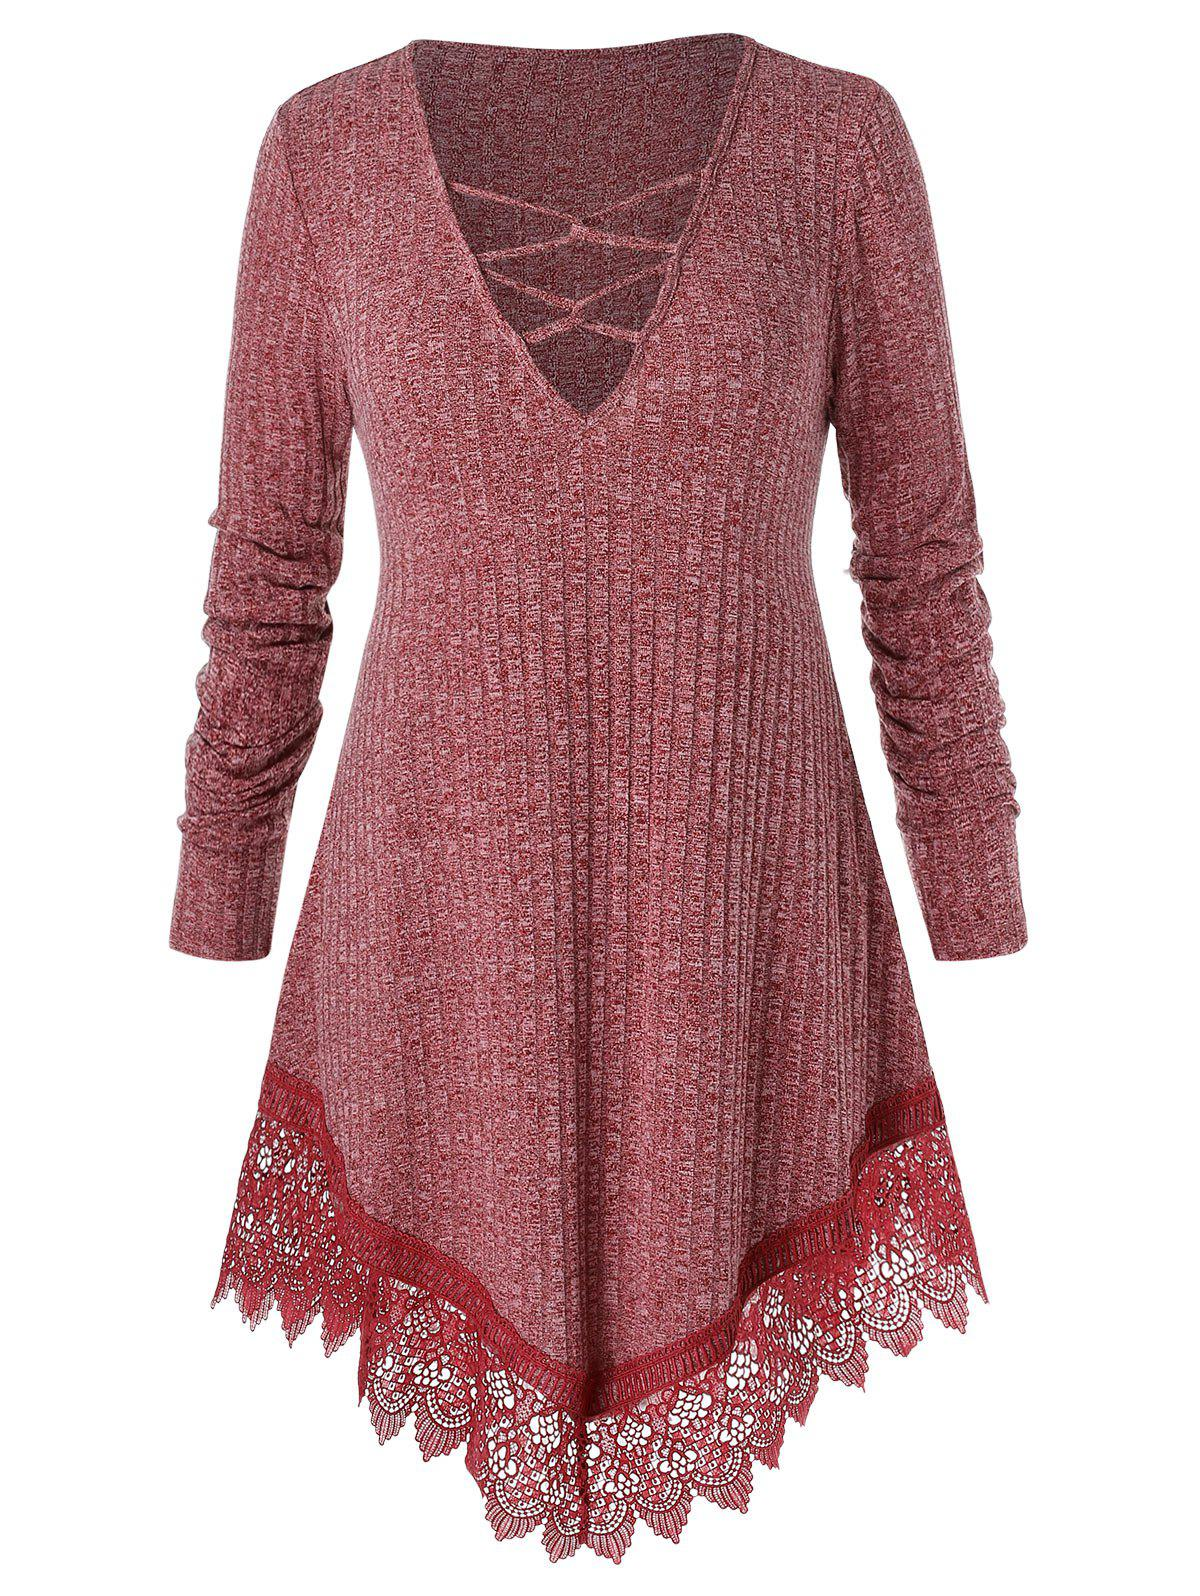 Plus Size Criss Cross Lace Panel Tunic Sweater - CHERRY RED 1X